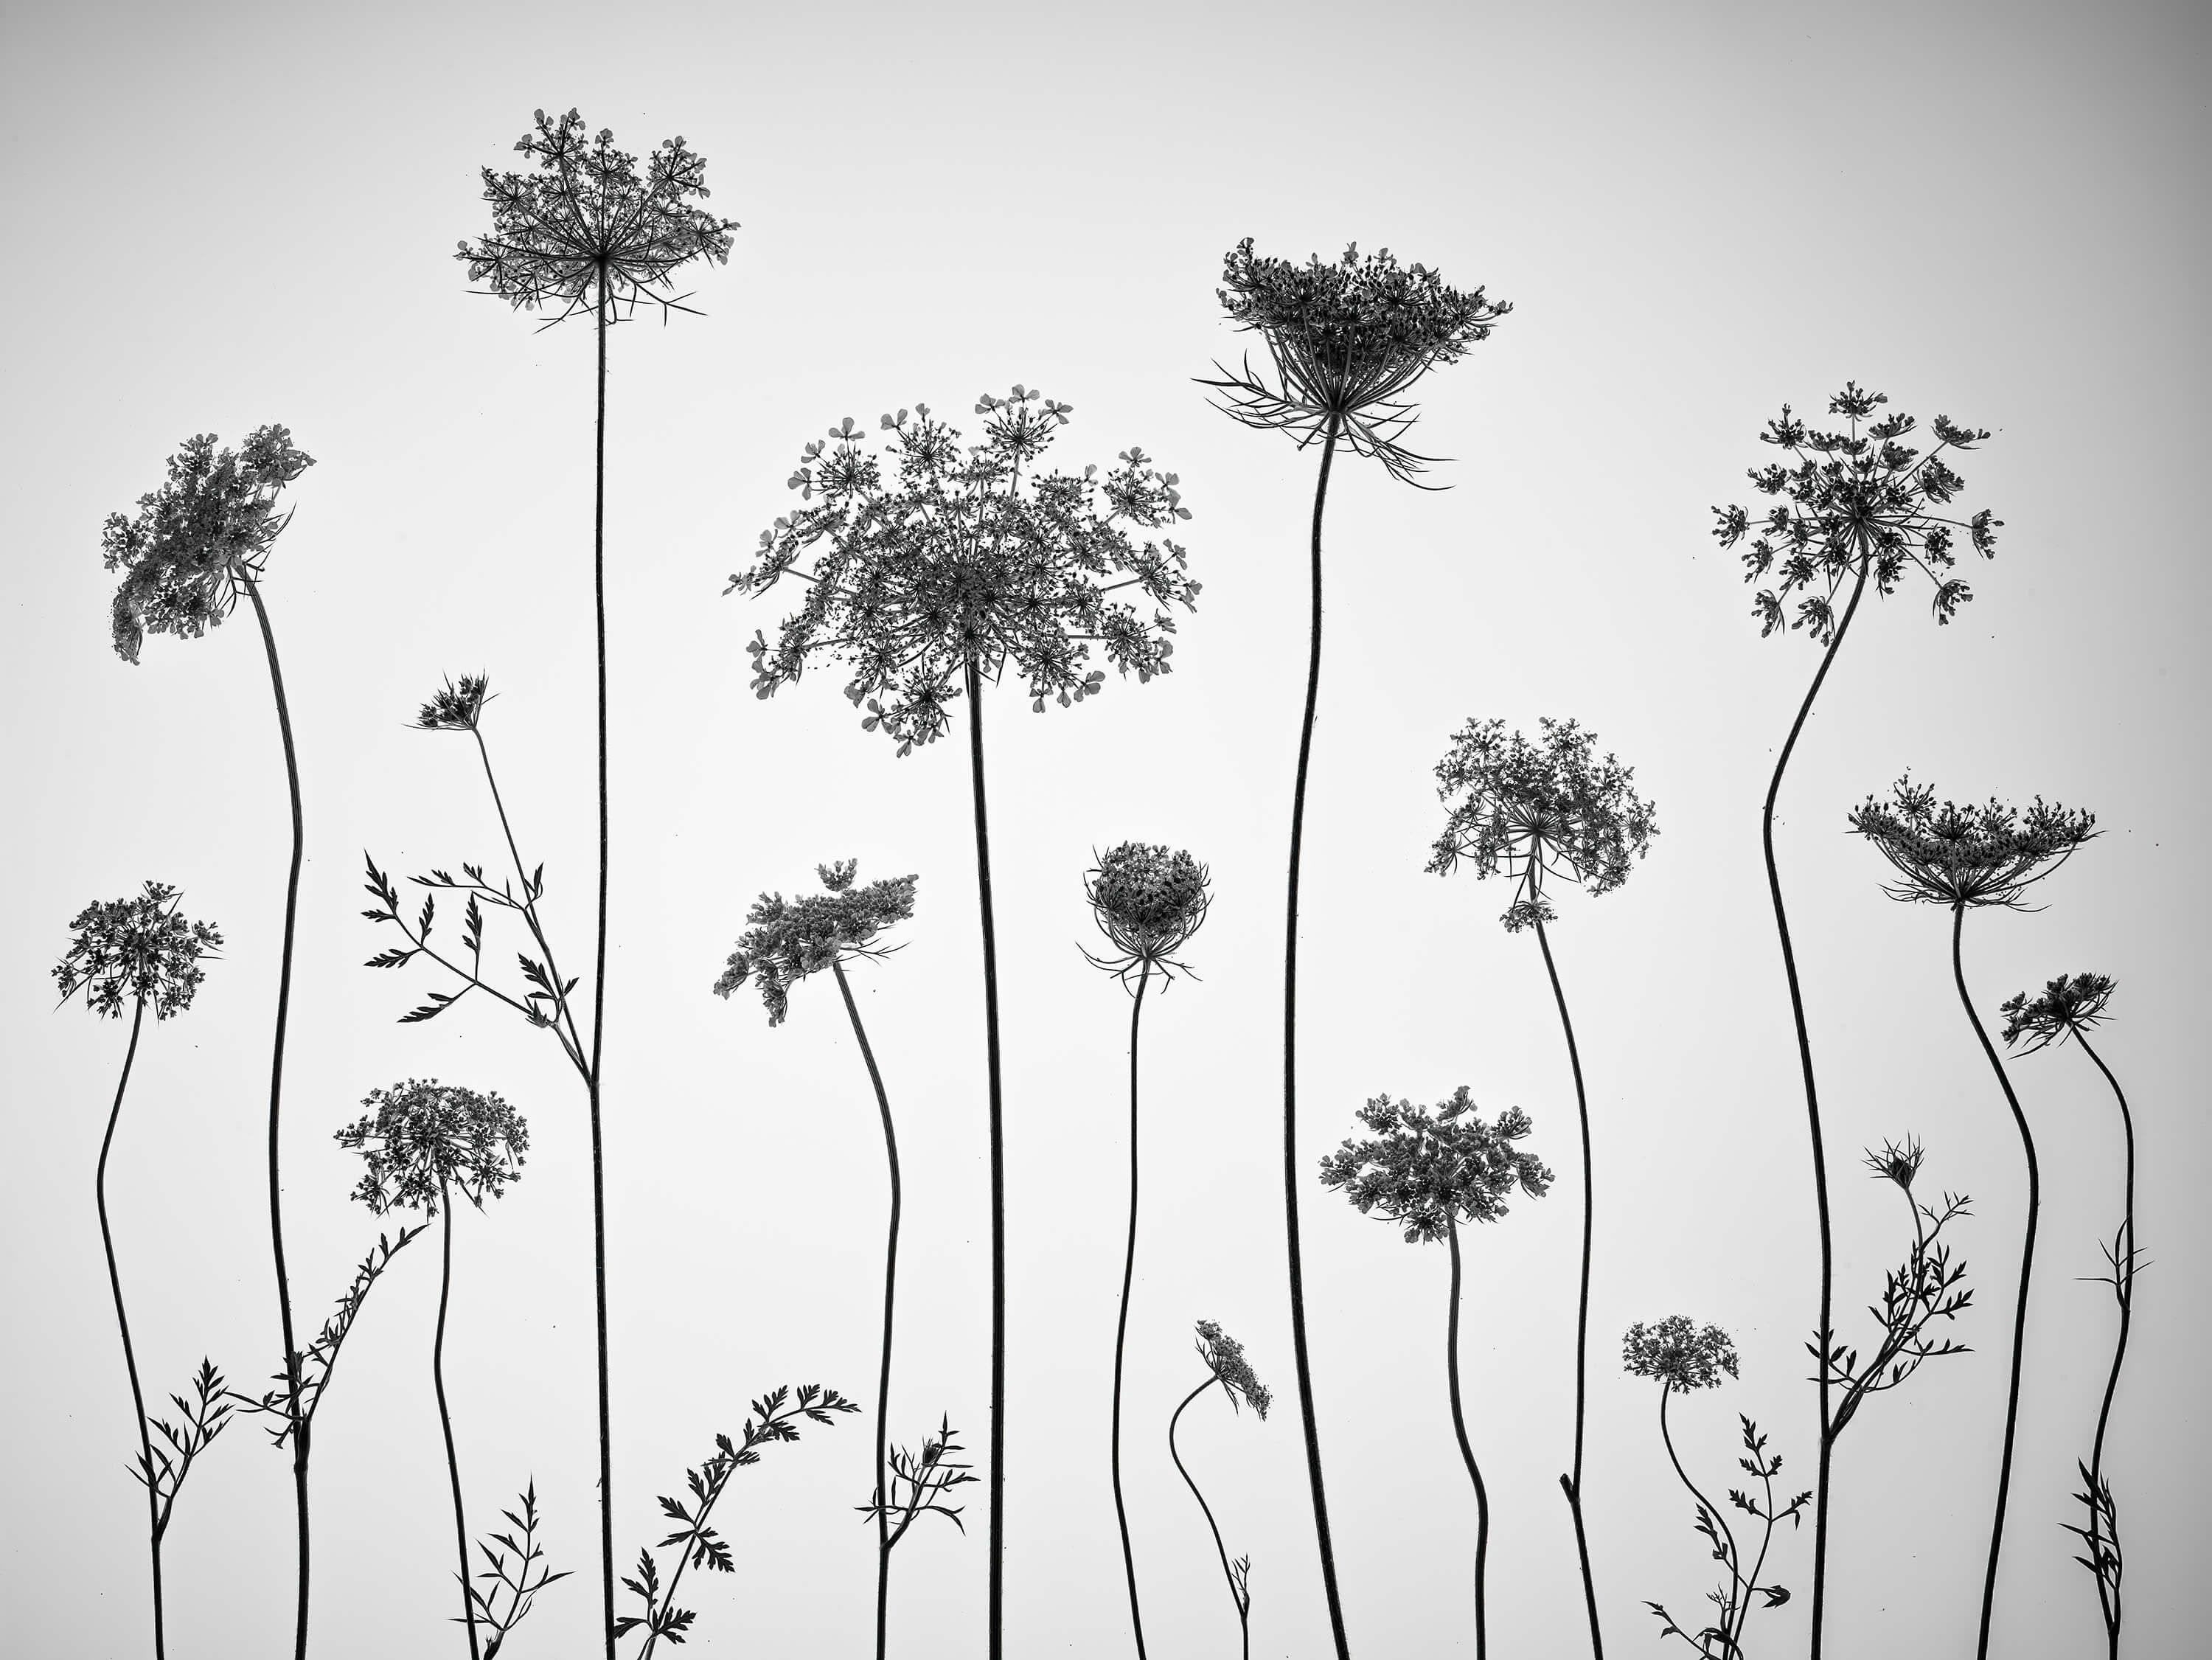 Cow parsley in black and white